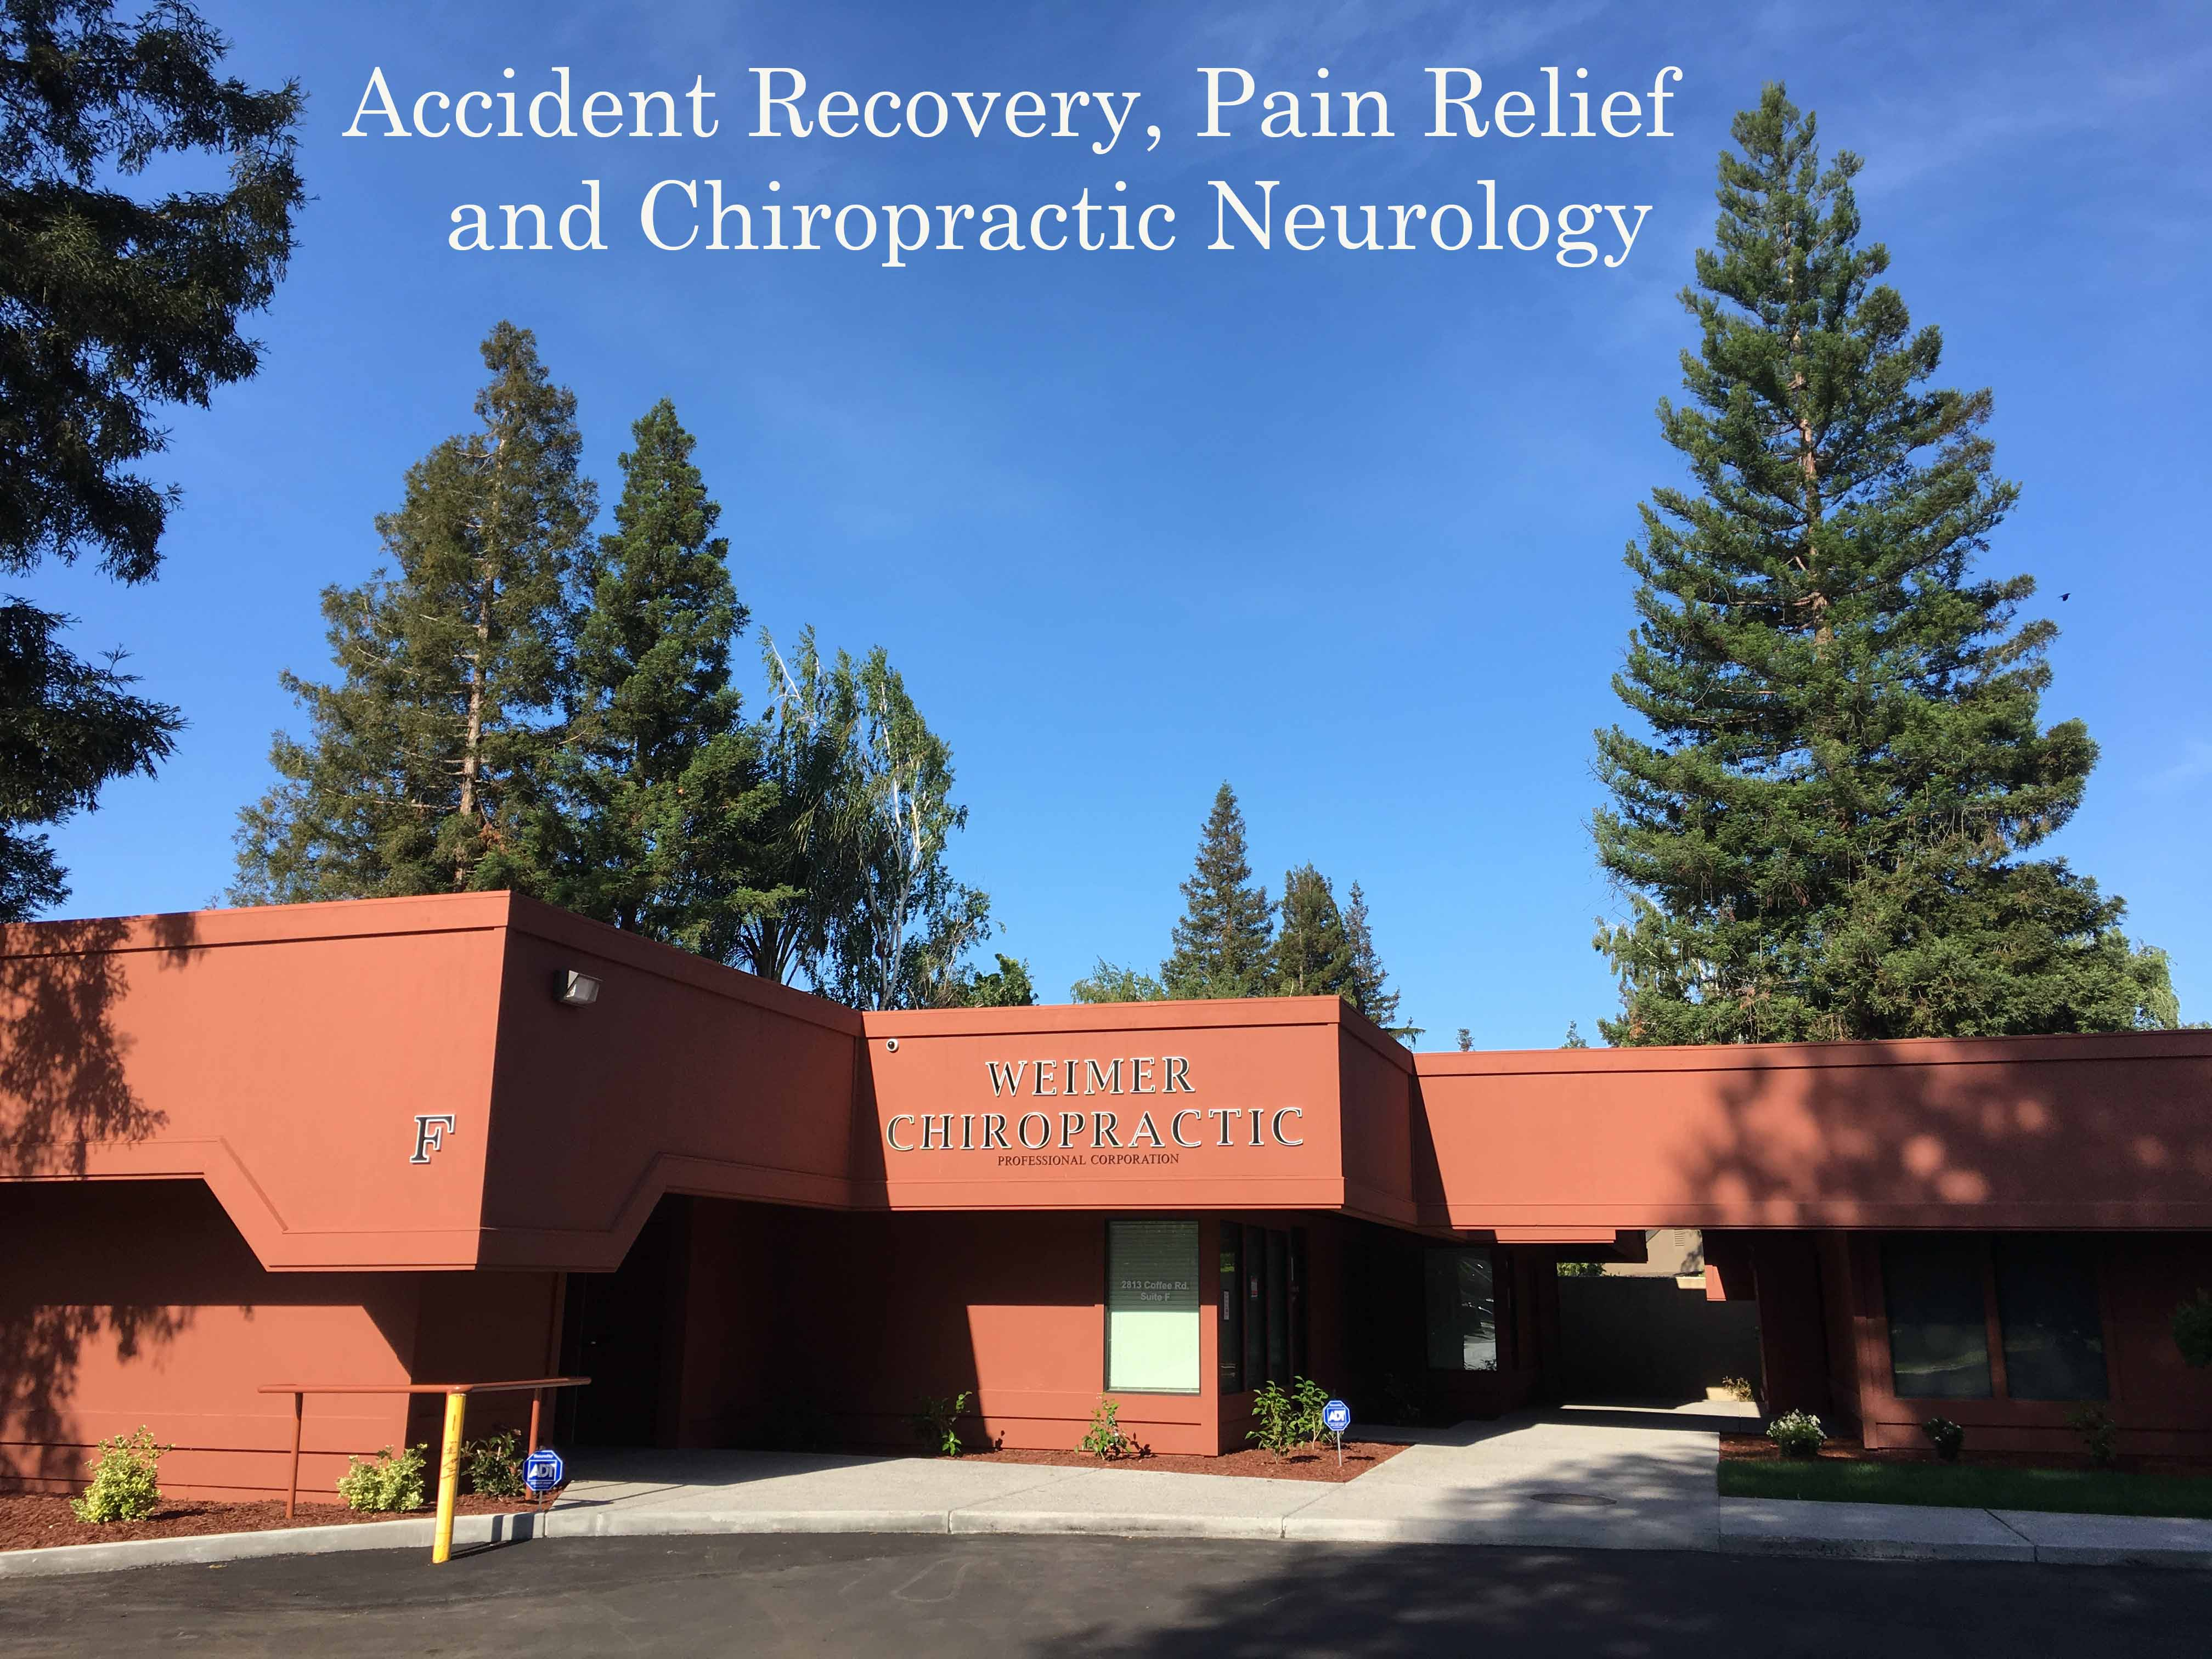 Accident Recovery, Pain Management and Chiropractic Neurology